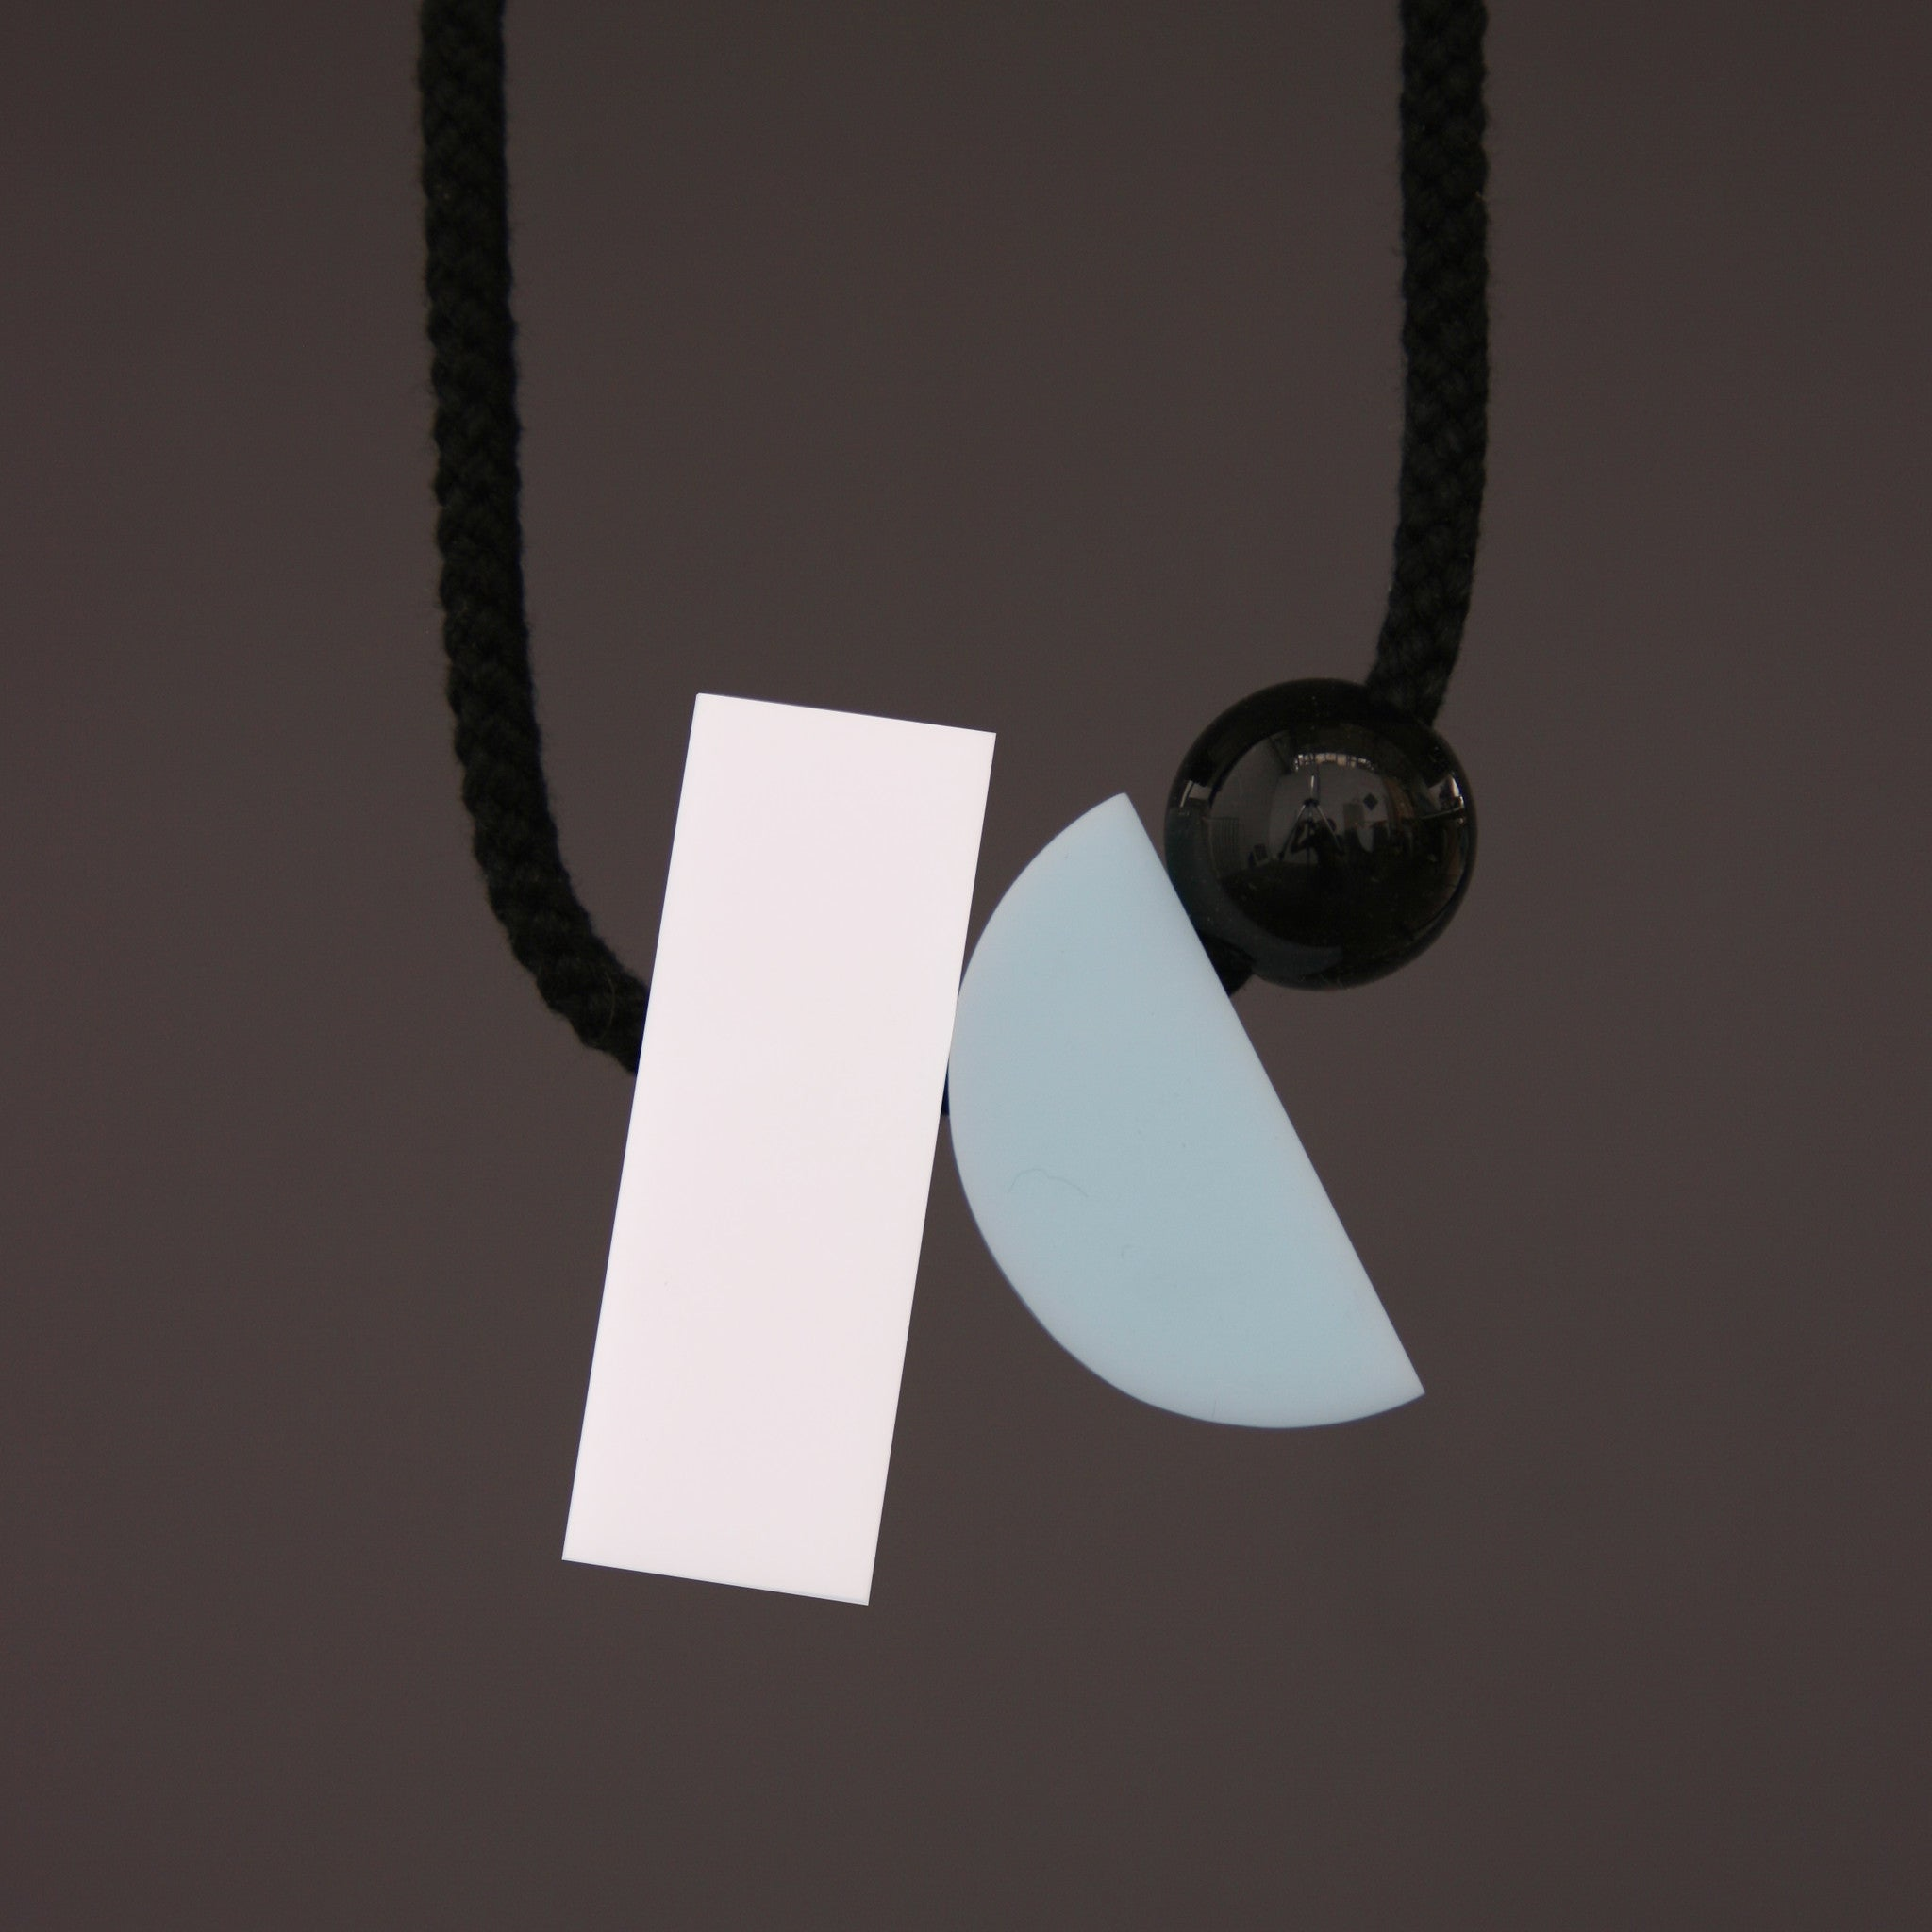 Image of Dora necklace with a white rectangle rather than pink.  Contemporary geometric necklace.